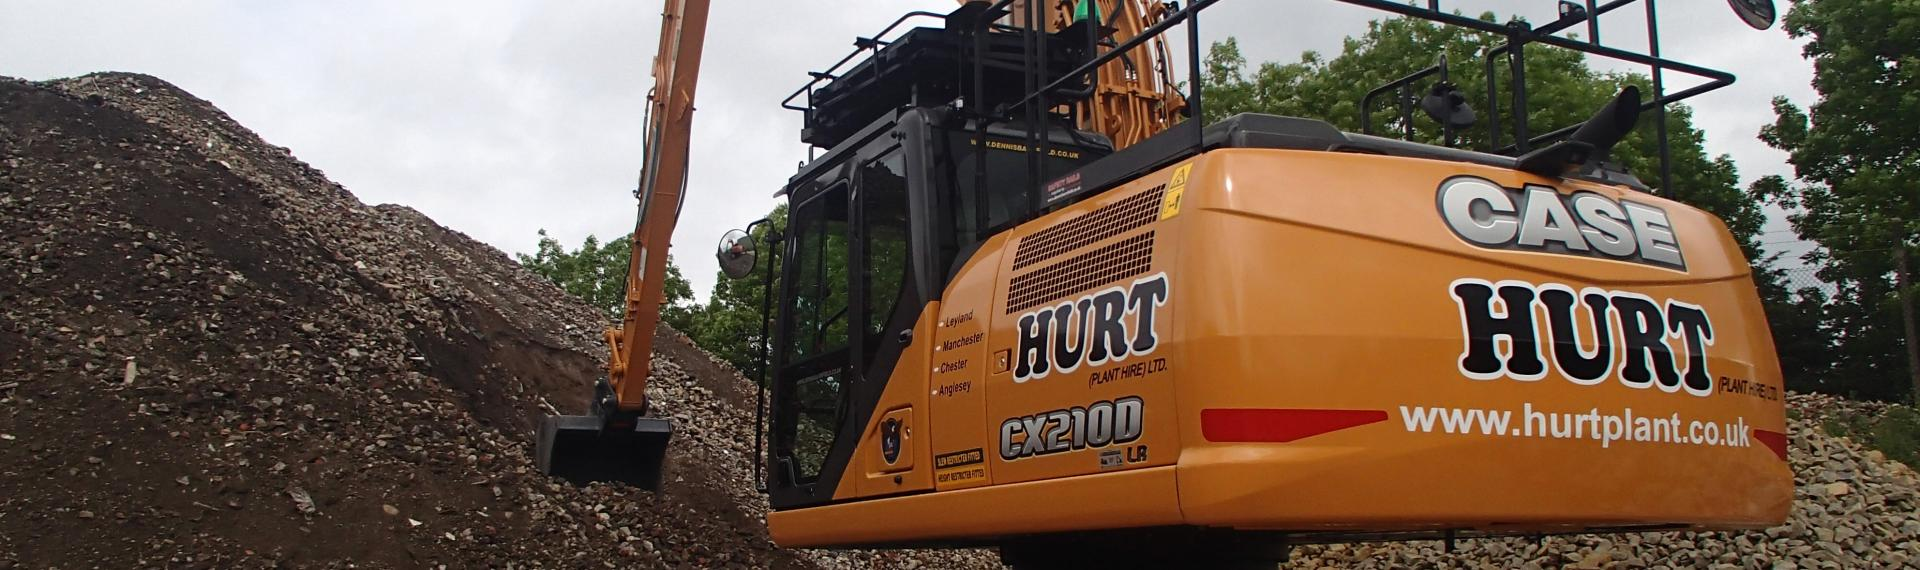 CASE Excavator in the North West